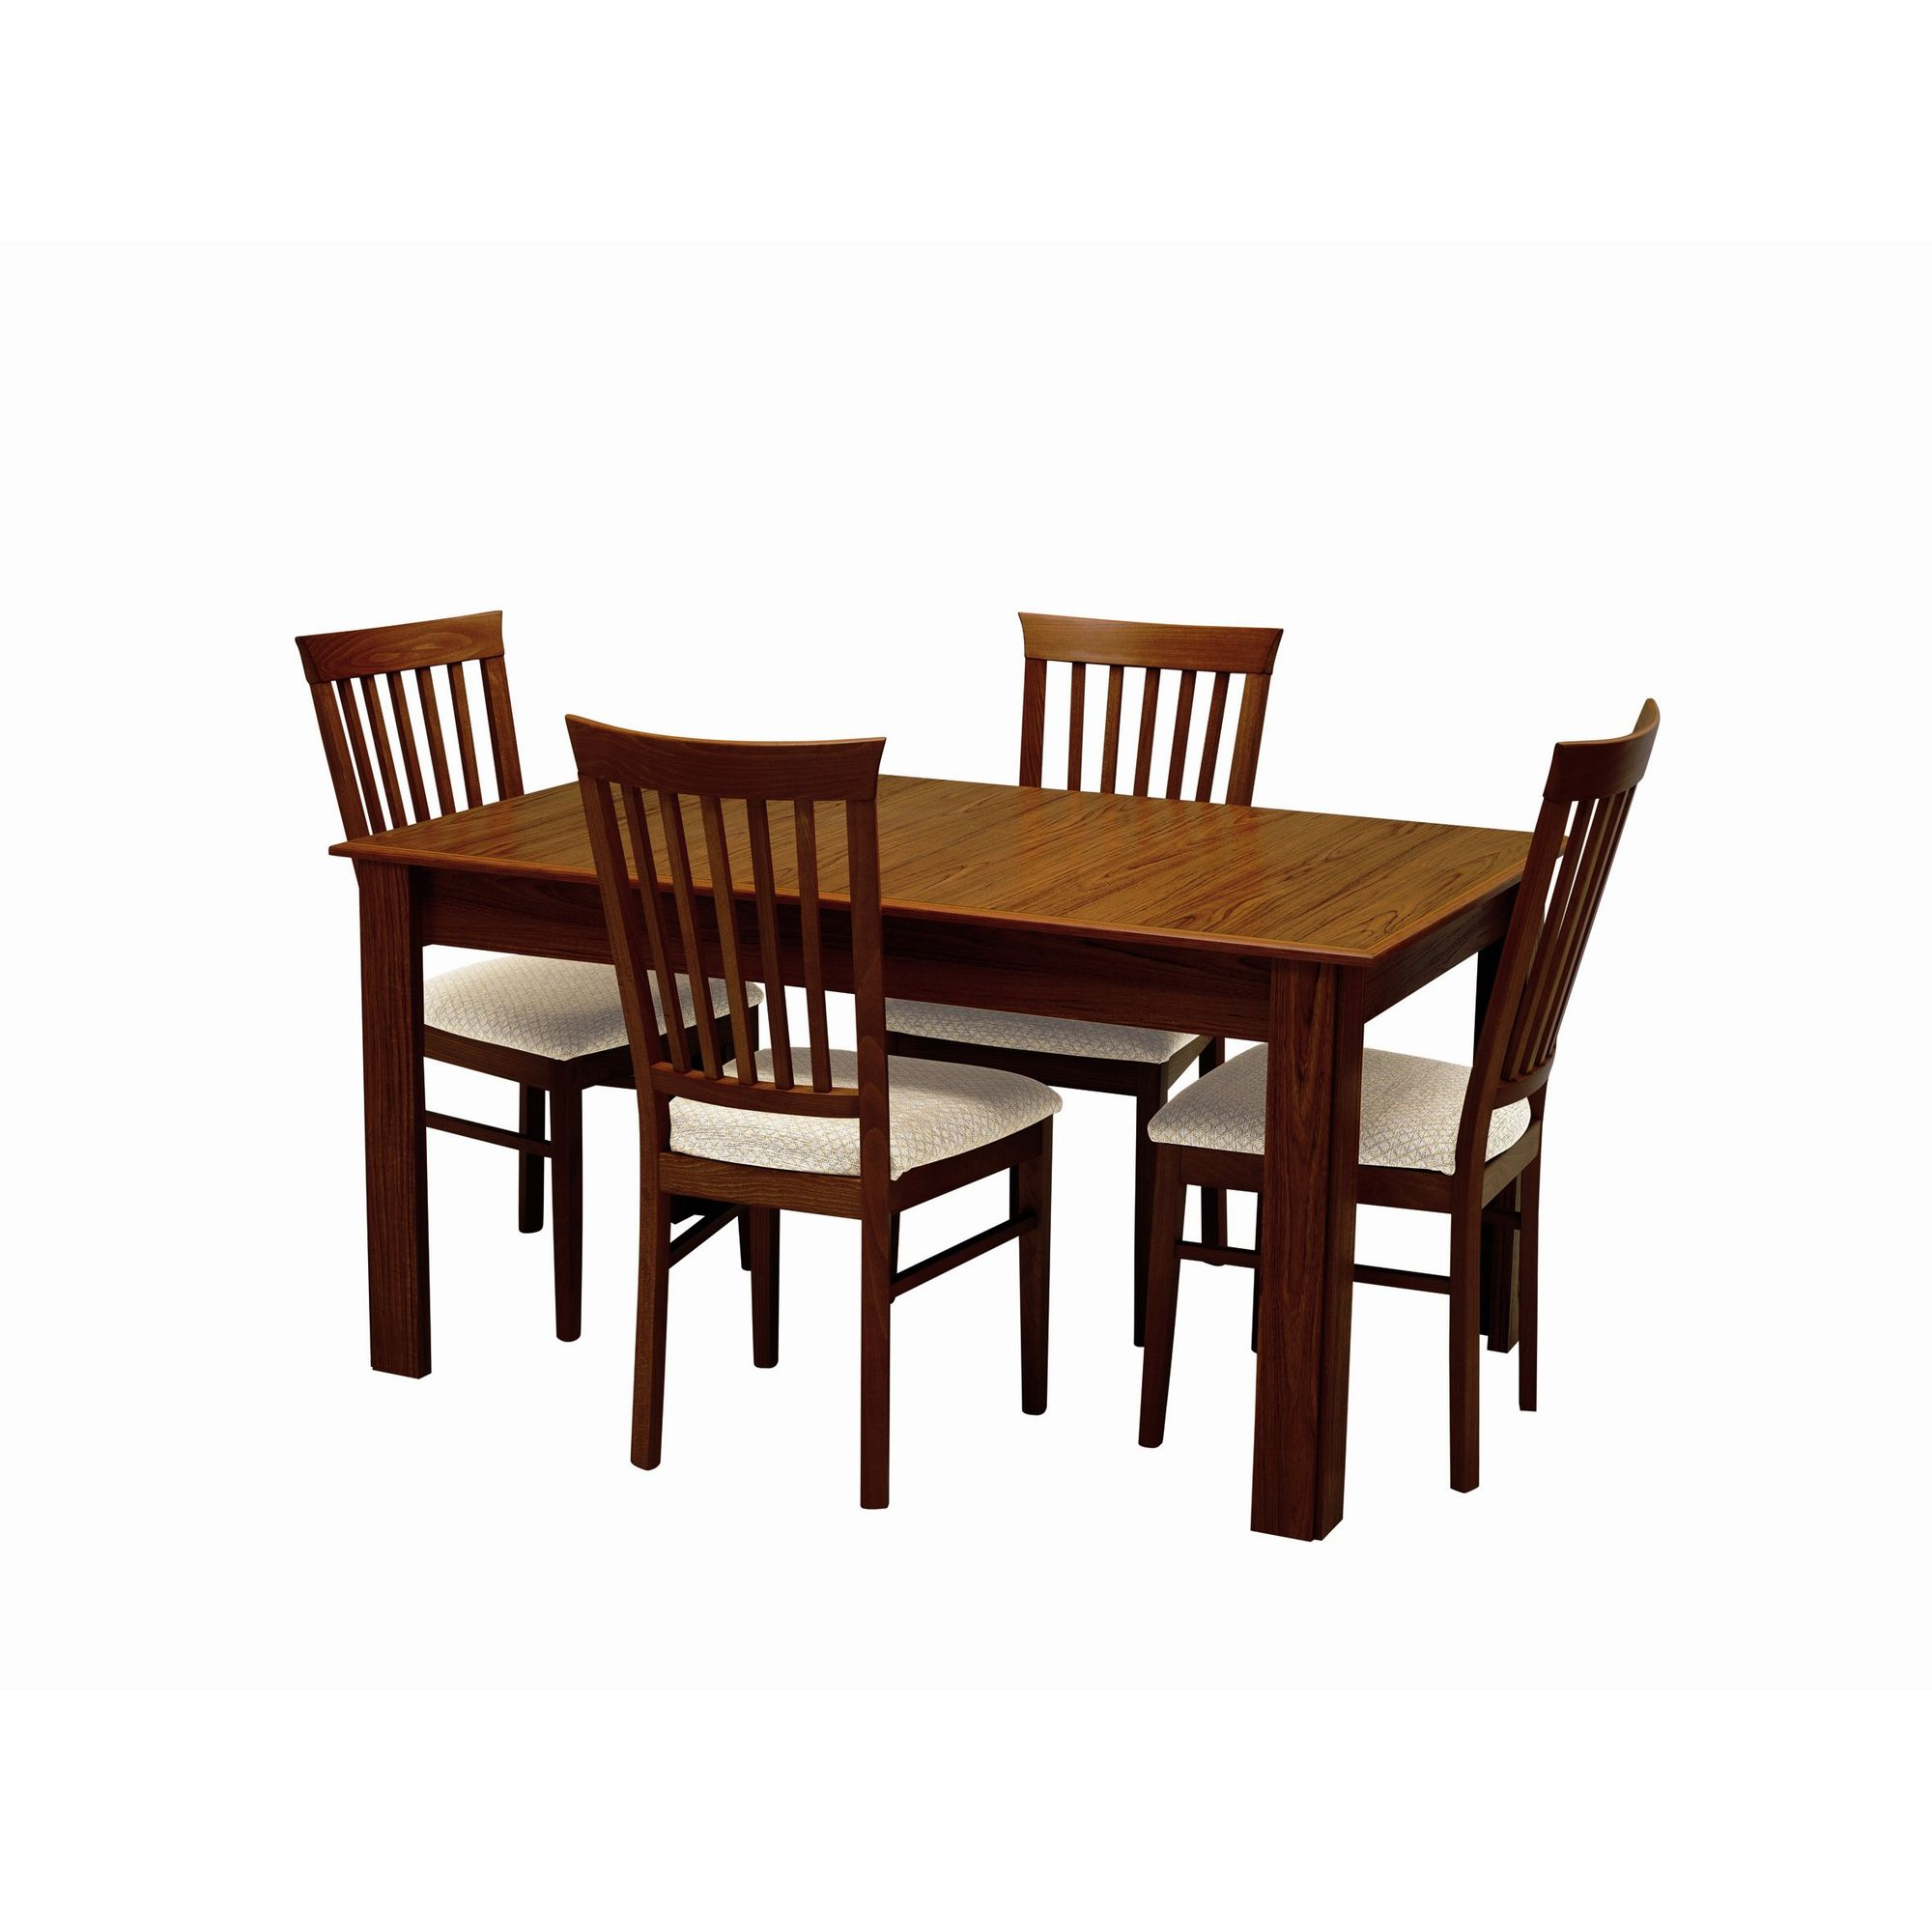 Caxton Byron Extending Dining Set with Slatted Back Dining Chairs in Mahogany - Green at Tesco Direct